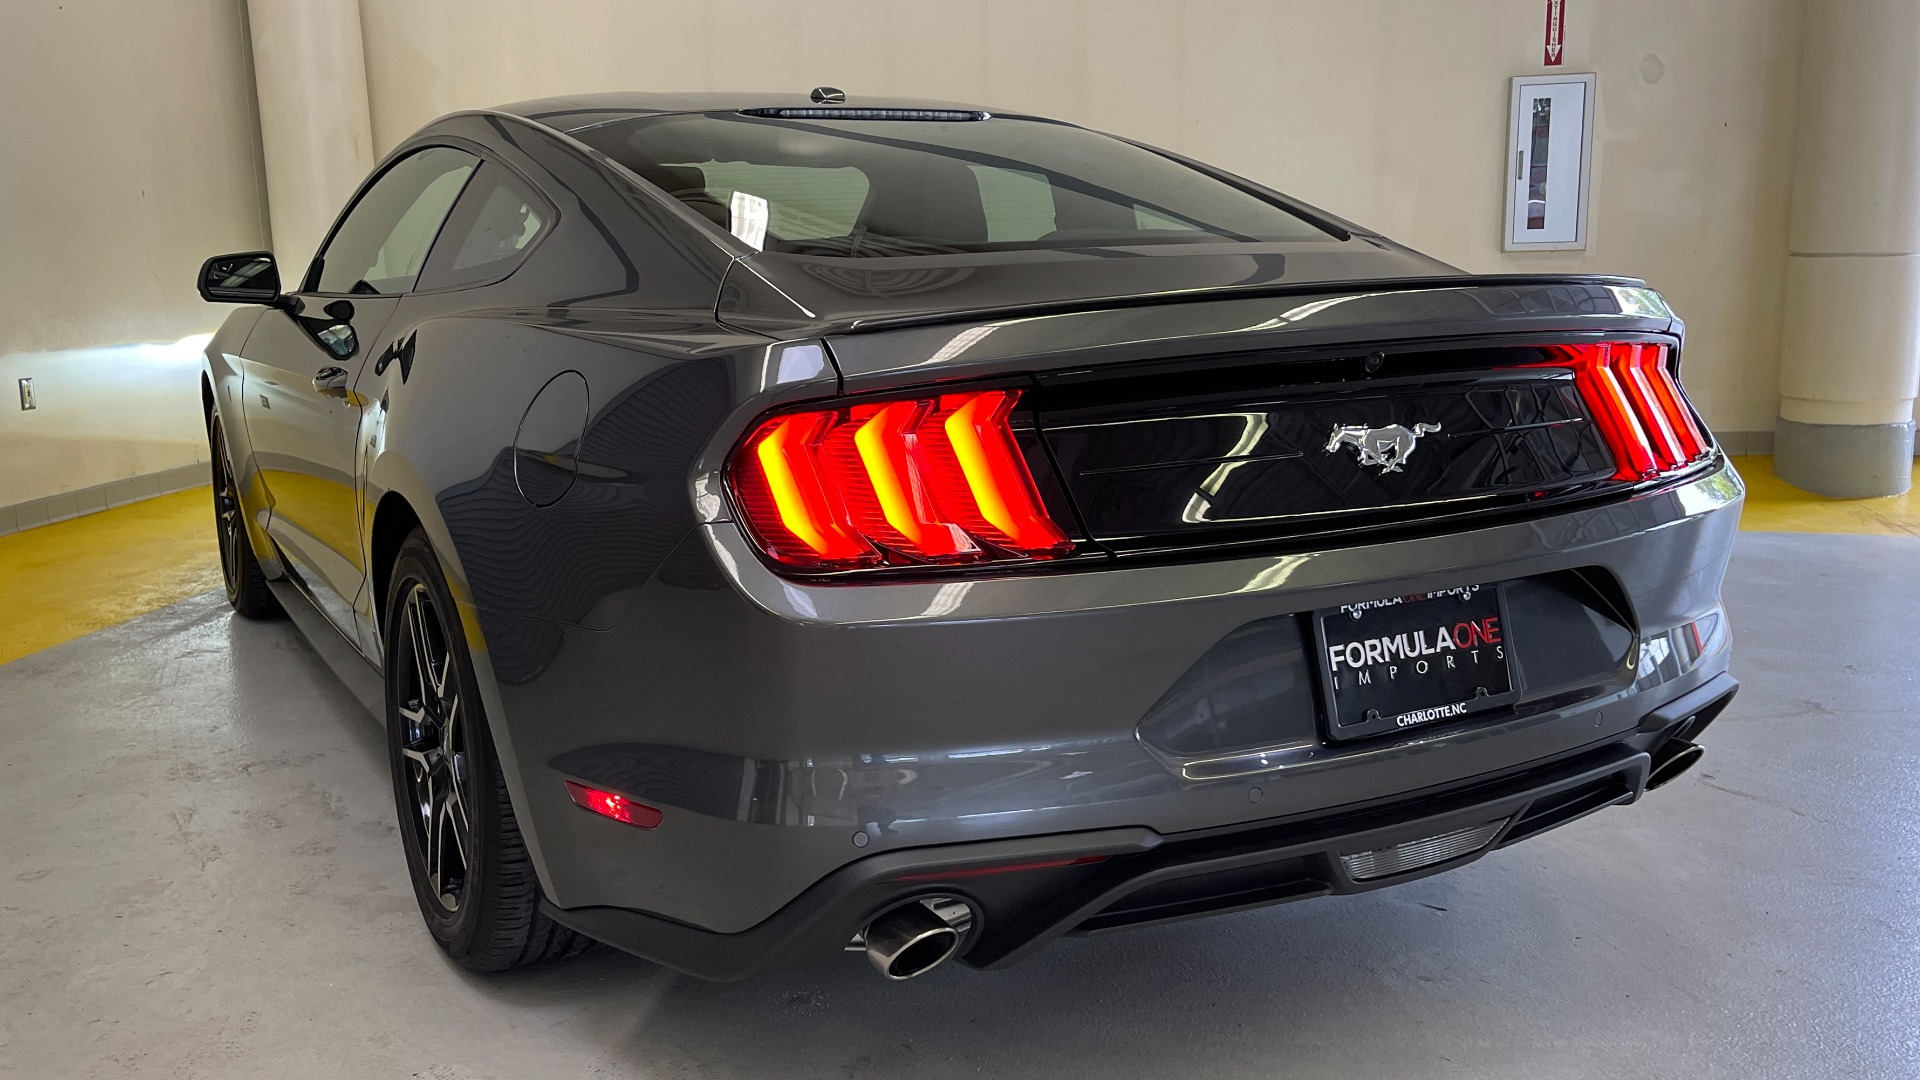 Used 2019 Ford MUSTANG ECOBOOST 2.3L / 10-SPD AUTO / SYNC3 8INCH SCREEN / TRACK APPS / REARVIEW for sale $31,795 at Formula Imports in Charlotte NC 28227 8